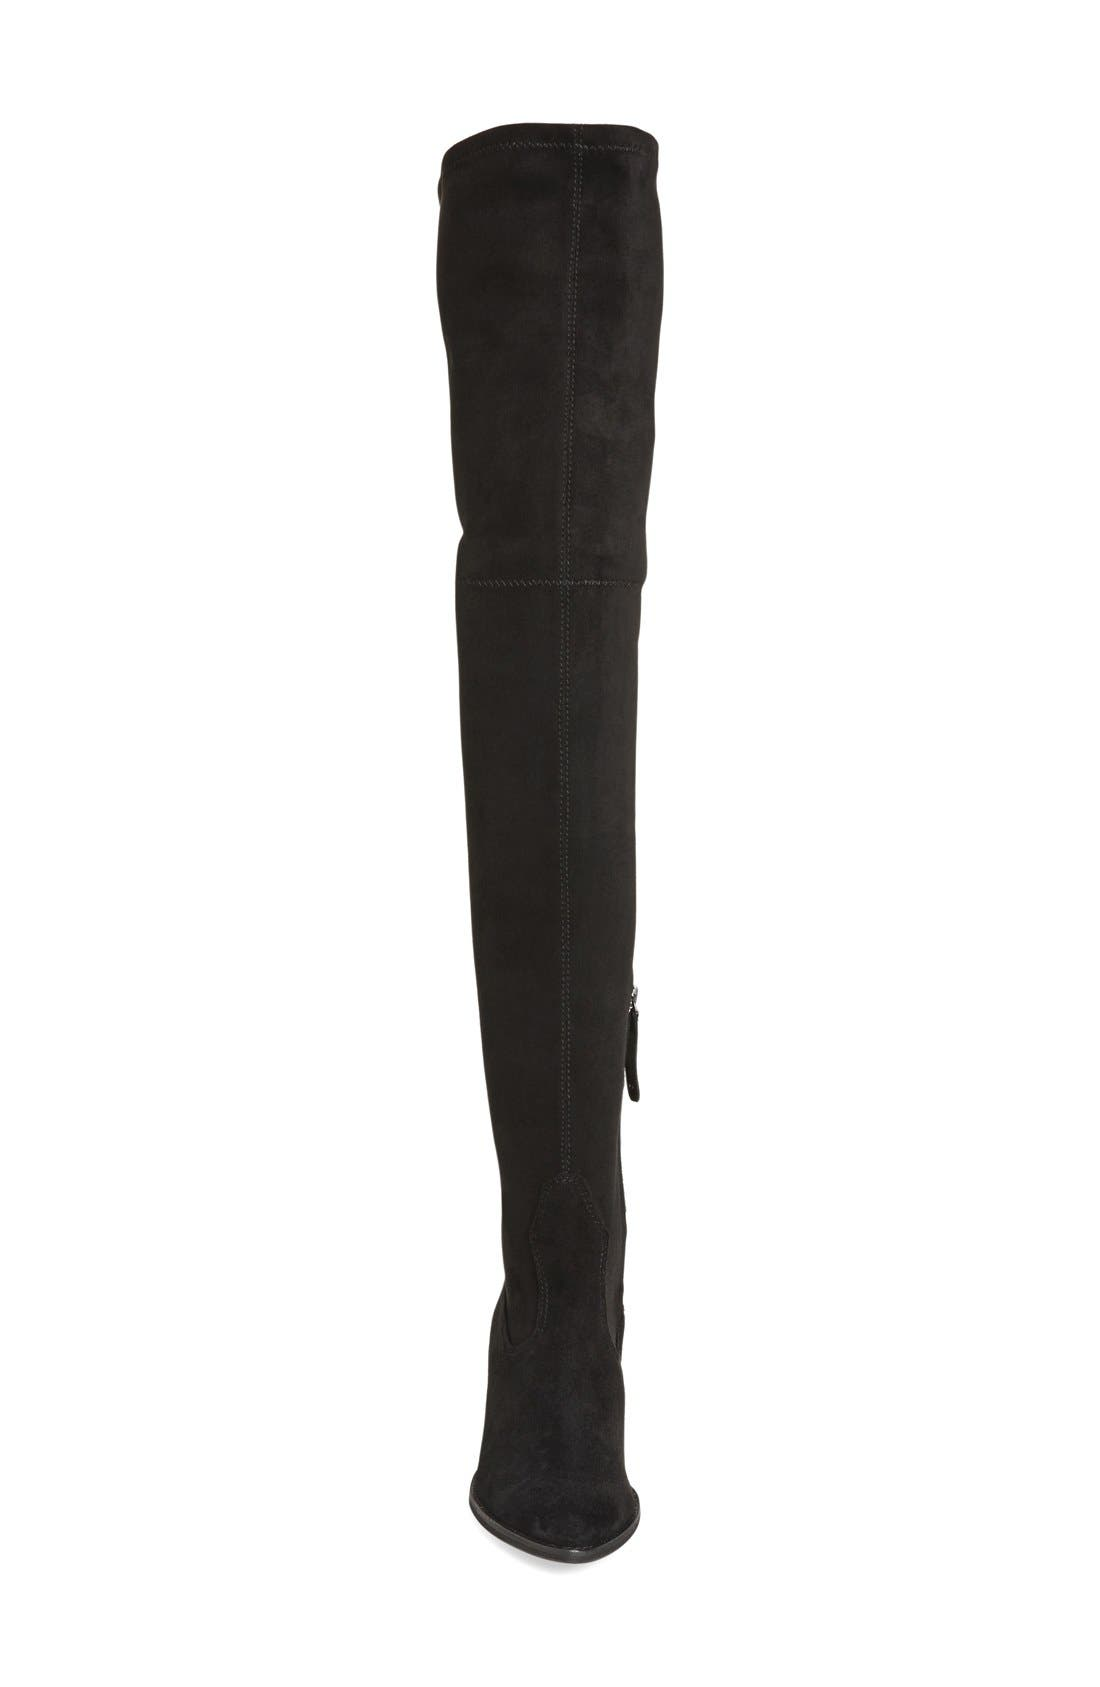 Alternate Image 3  - Dolce Vita 'Sparrow' Thigh High Almond Toe Boot (Women)